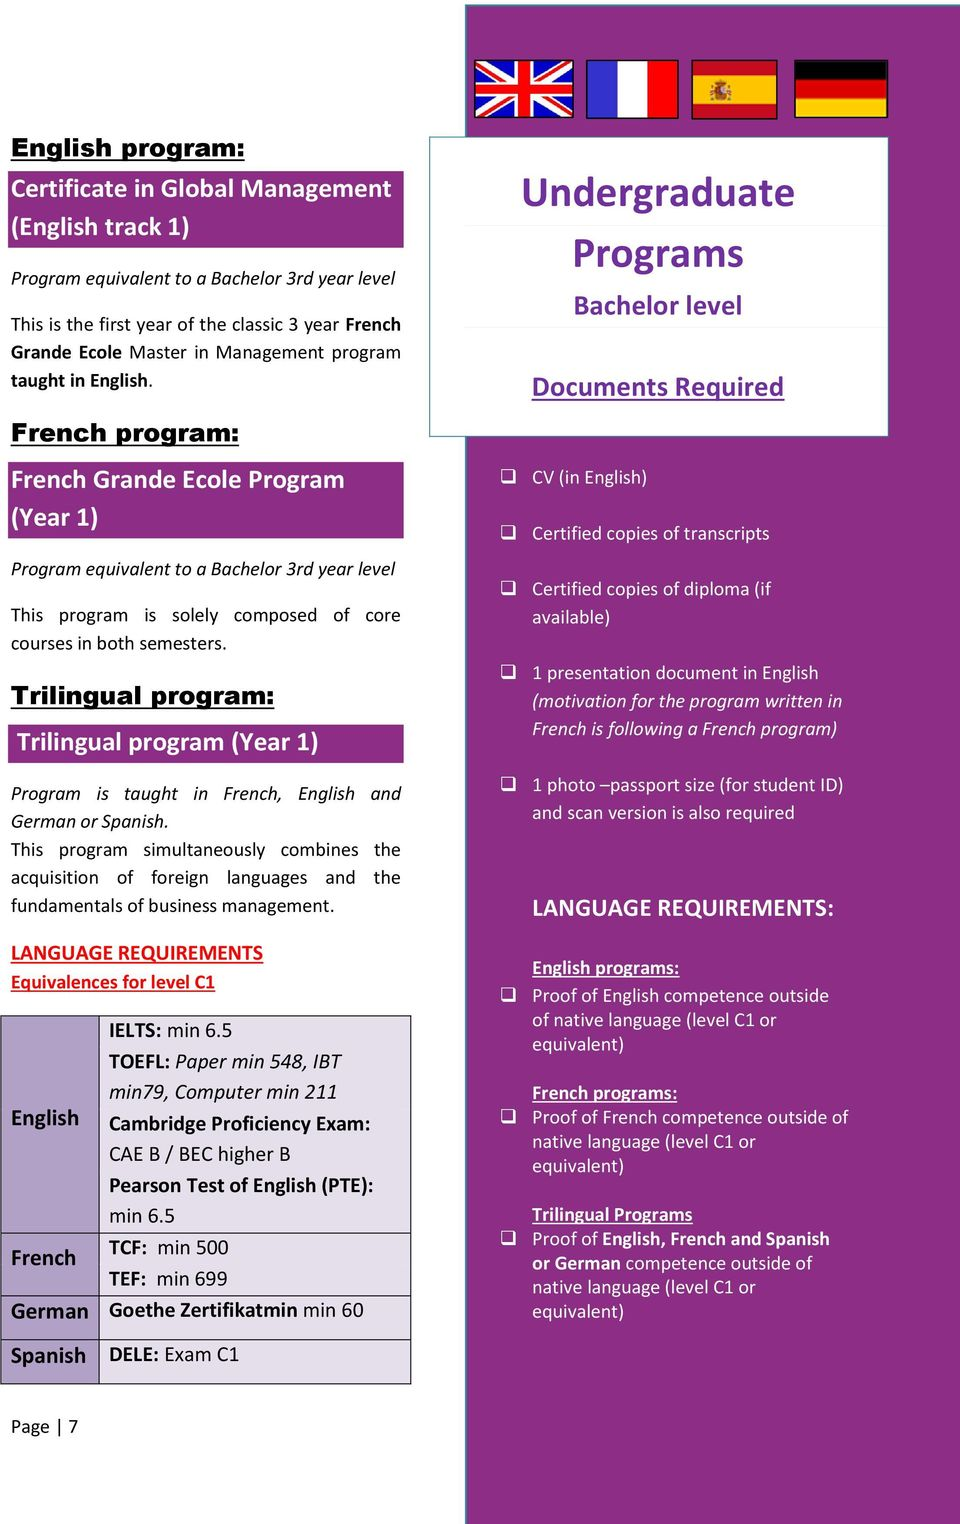 semesters. Trilingual program: Trilingual program (Year 1) is taught in French, English and German or Spanish.